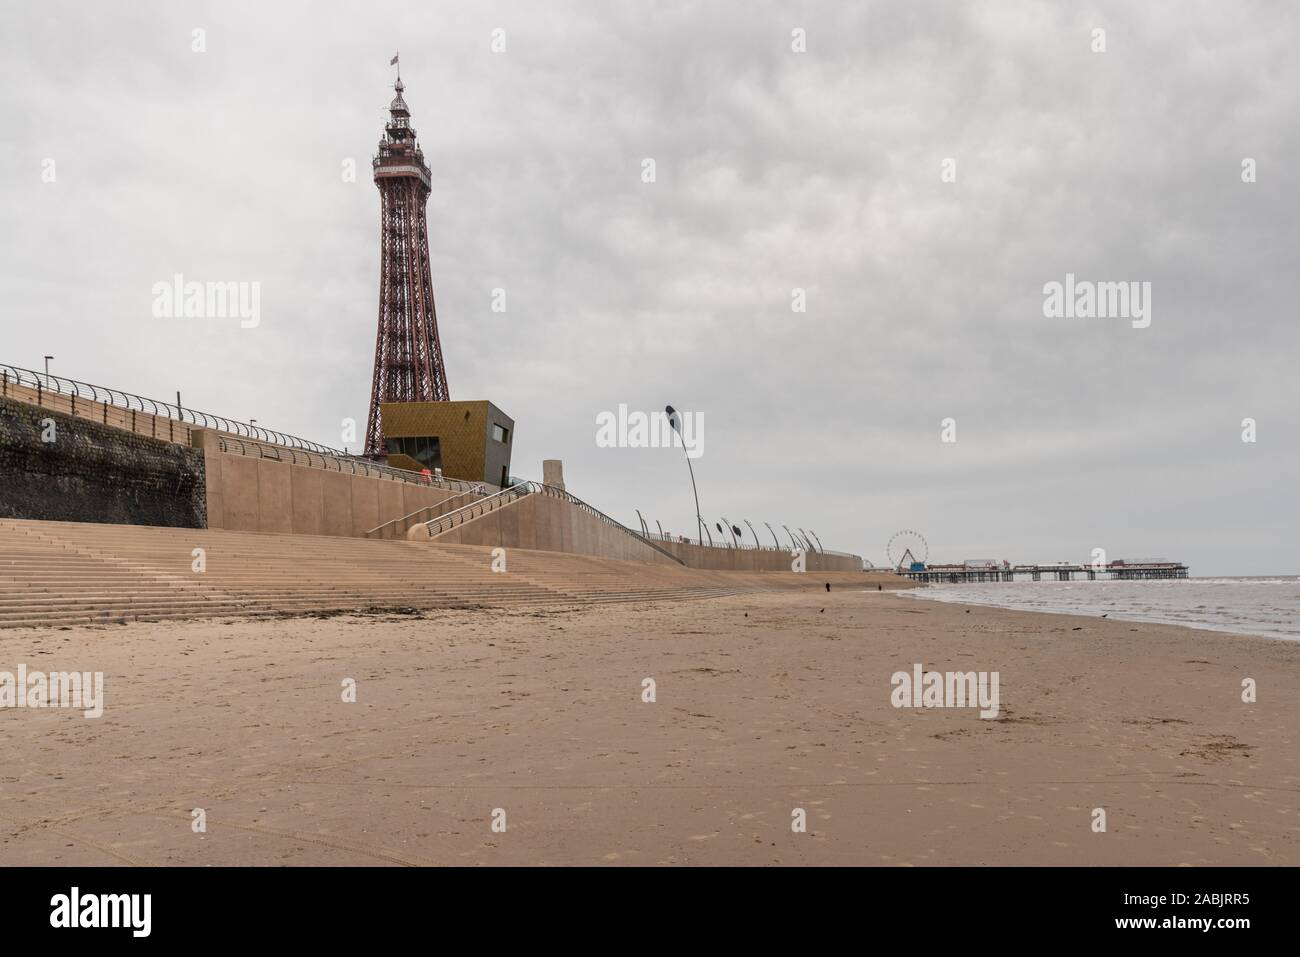 Blackpool, England, UK - April 28, 2019: View from the beach towards Blackpool Tower and the Central Pier Stock Photo